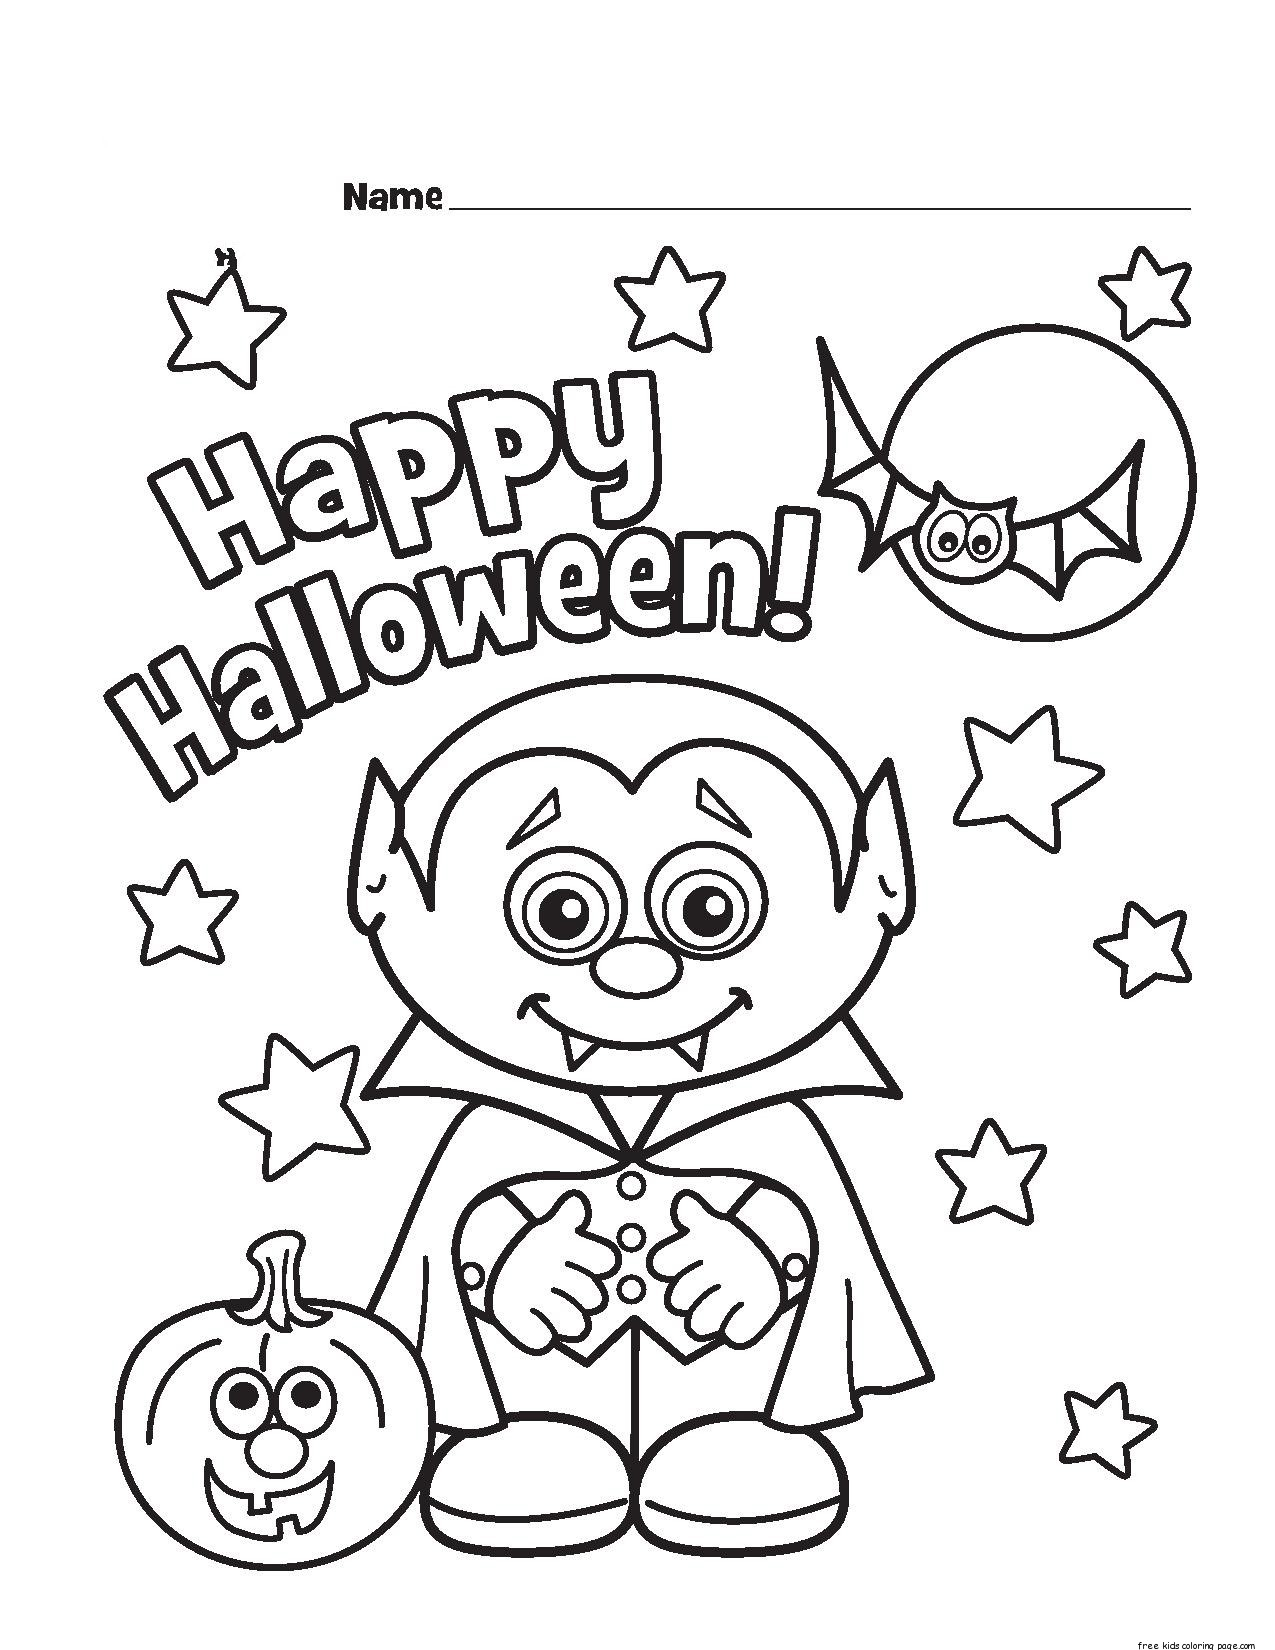 Halloween Little V Ire Printable Coloring Pages For Kidsfree